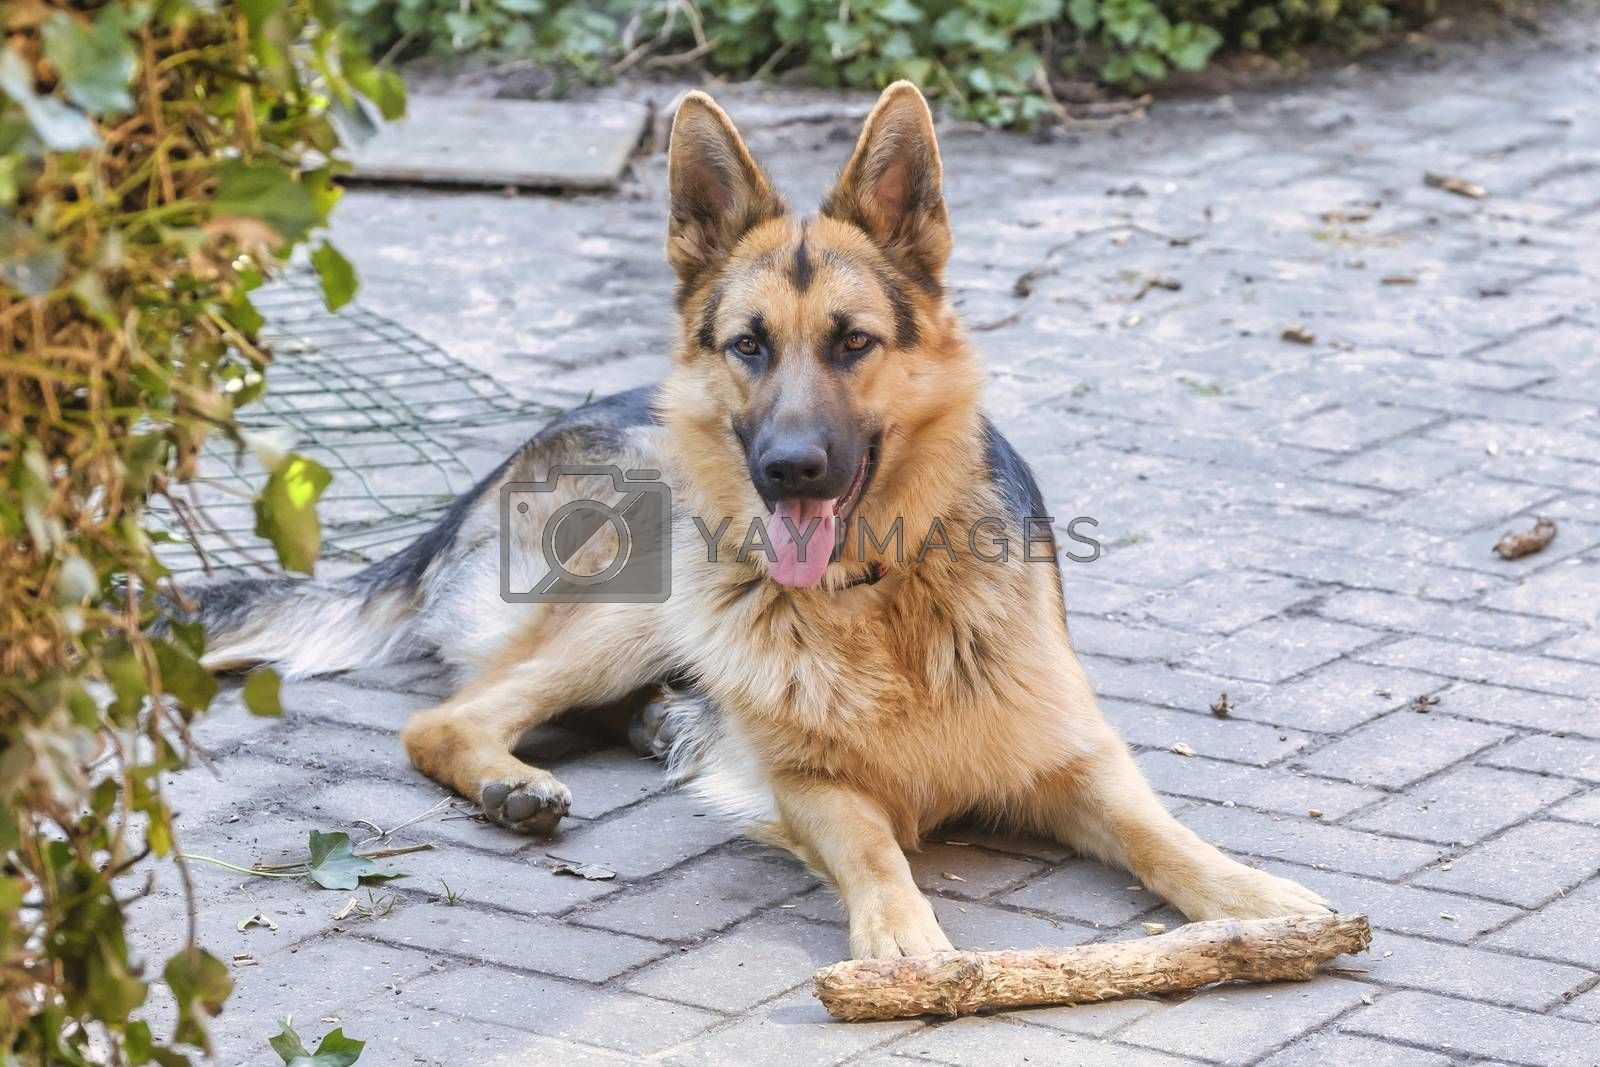 Portrait of a German Shepherd, 1 year old, the dog is lying on the path in the garden with a stick.